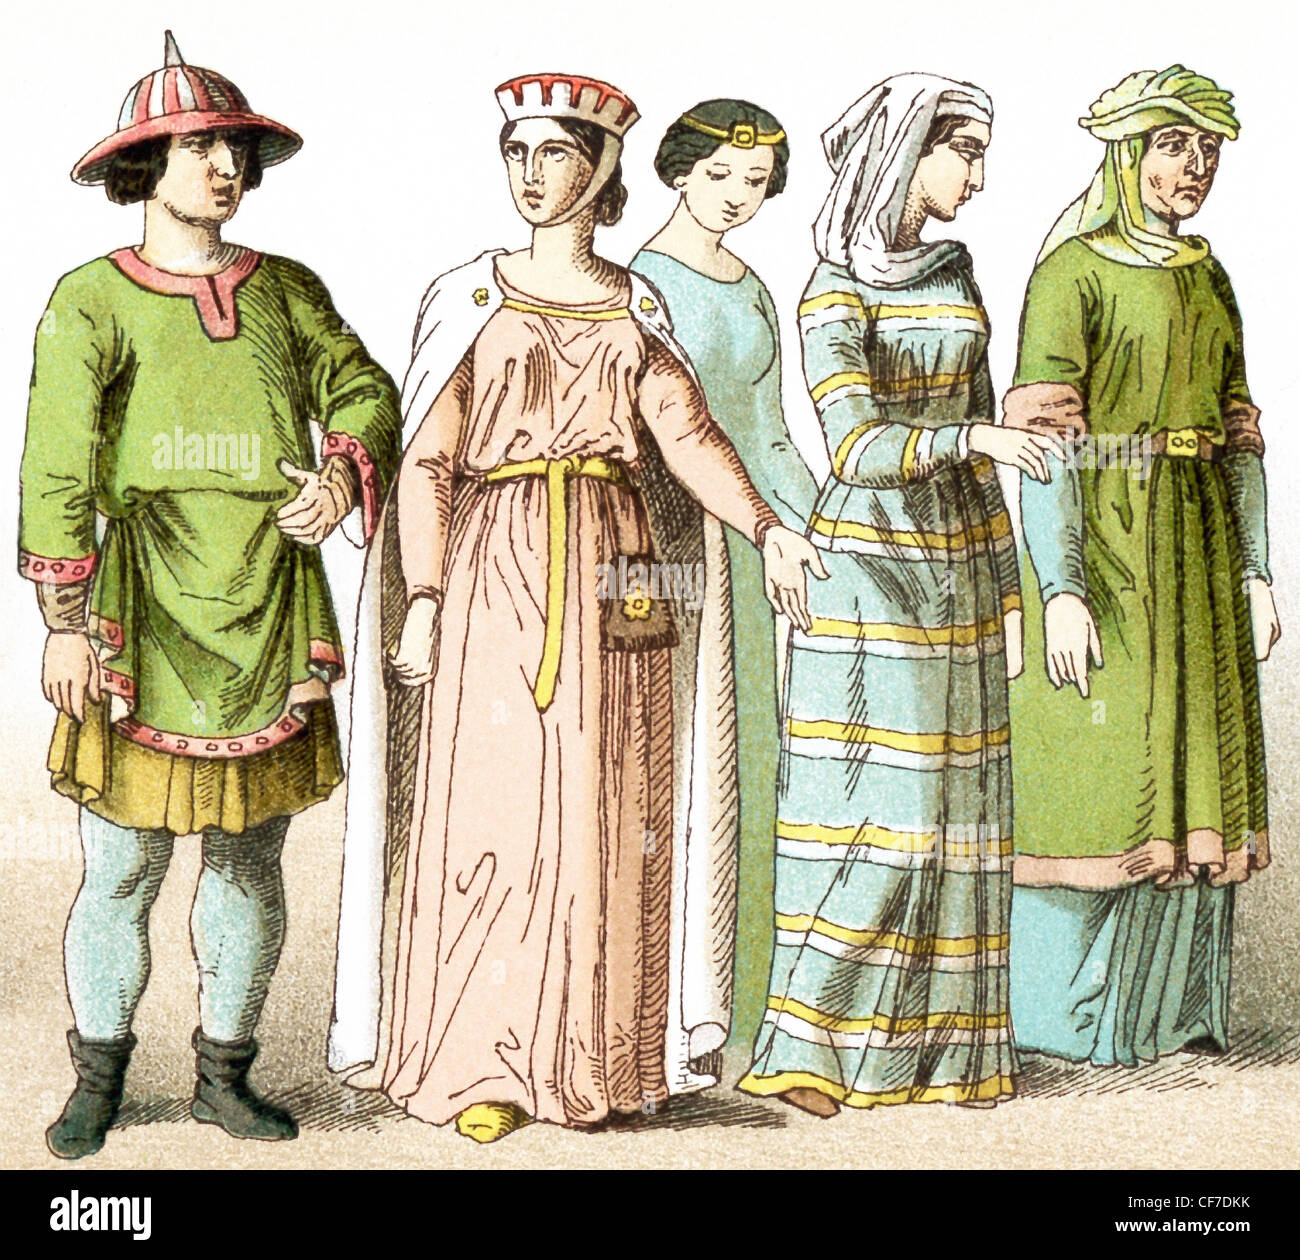 The figures represent French people around A.D. 1100. They are, from left to right: a man of rank and four ladies - Stock Image